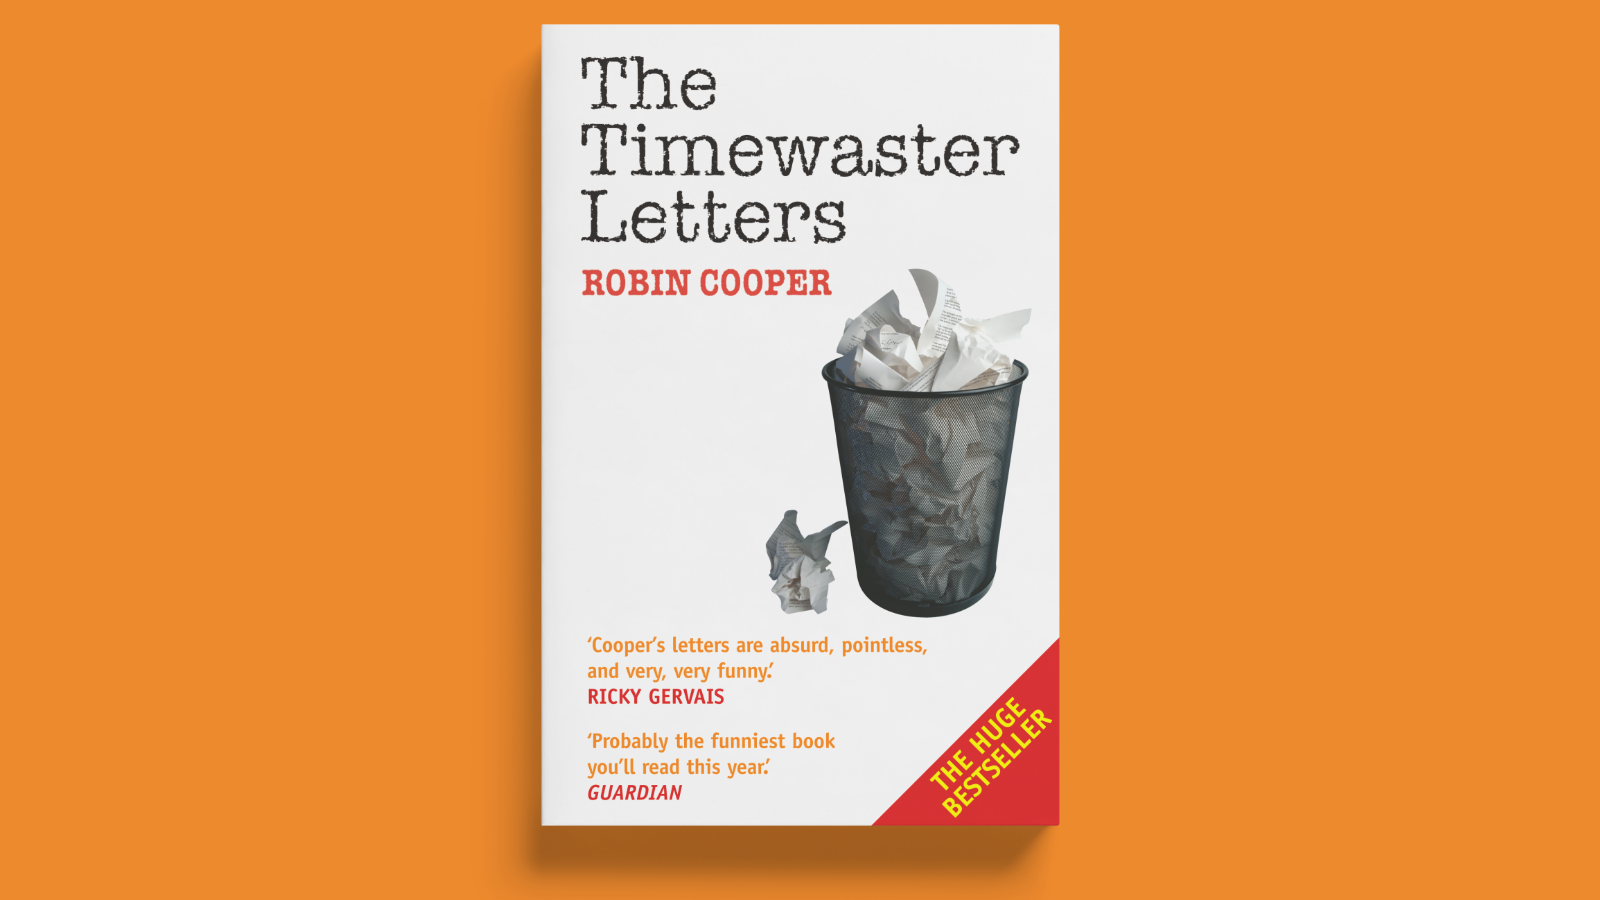 The Timewaster Letters cover design